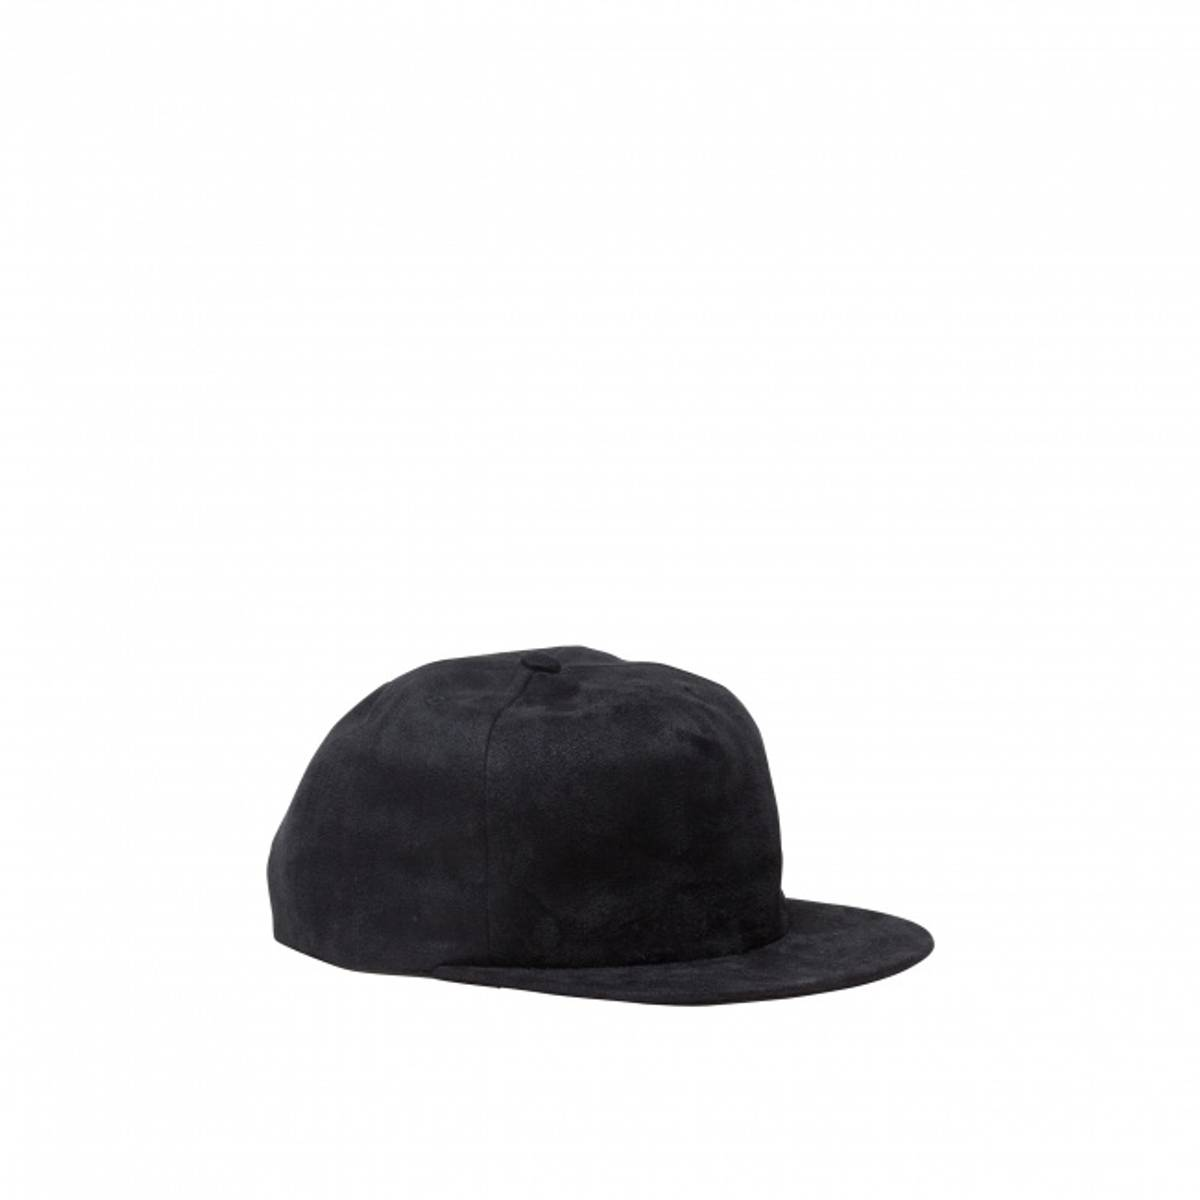 d7abb66f2ee Norse Projects Fake suede trucker cap Size one size - Hats for Sale -  Grailed